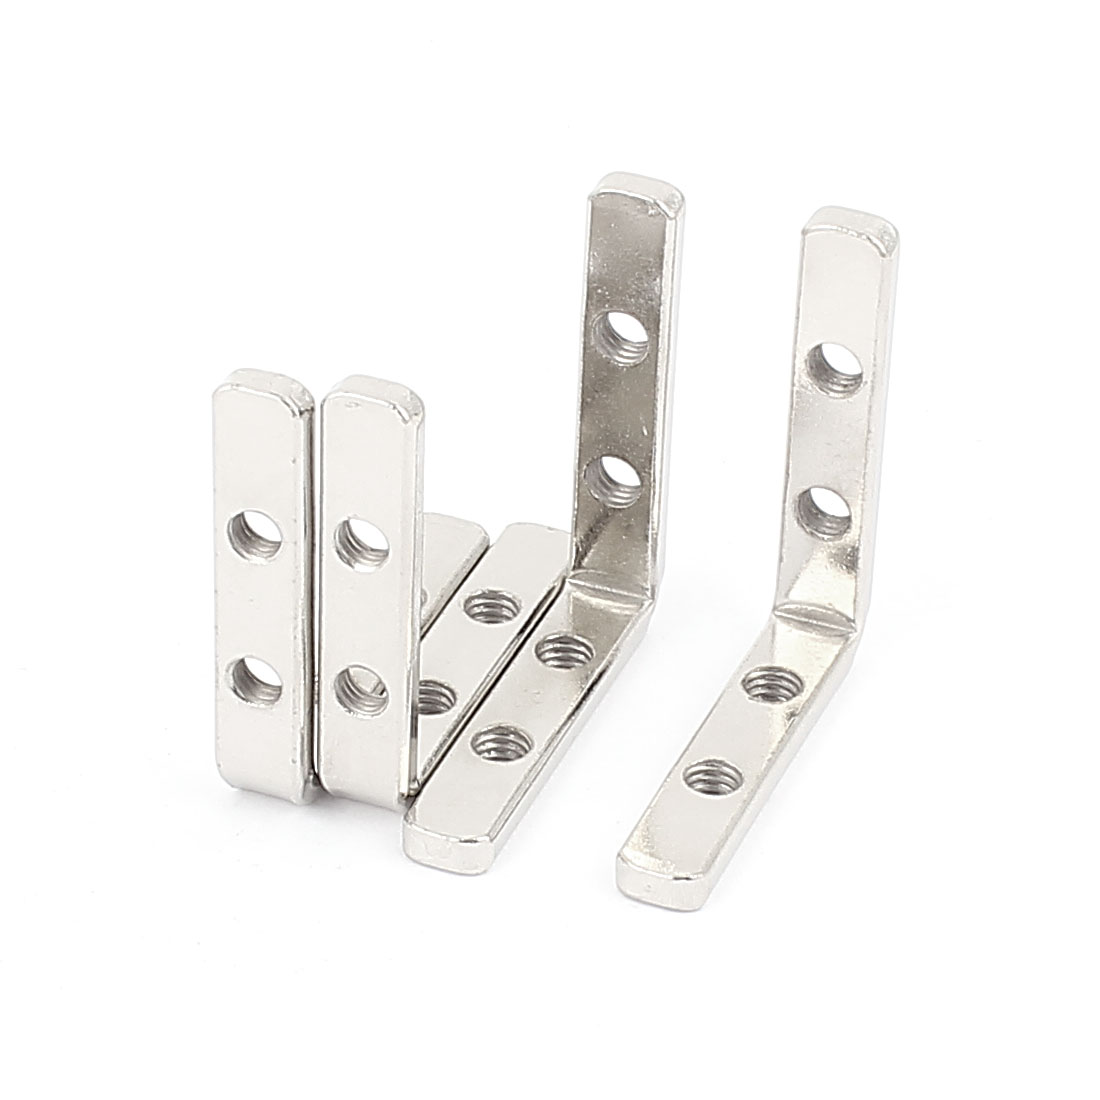 L Shape Shelf Support Corner Brace Joint Metal Angle Bracket 50mm x 50mm 4pcs